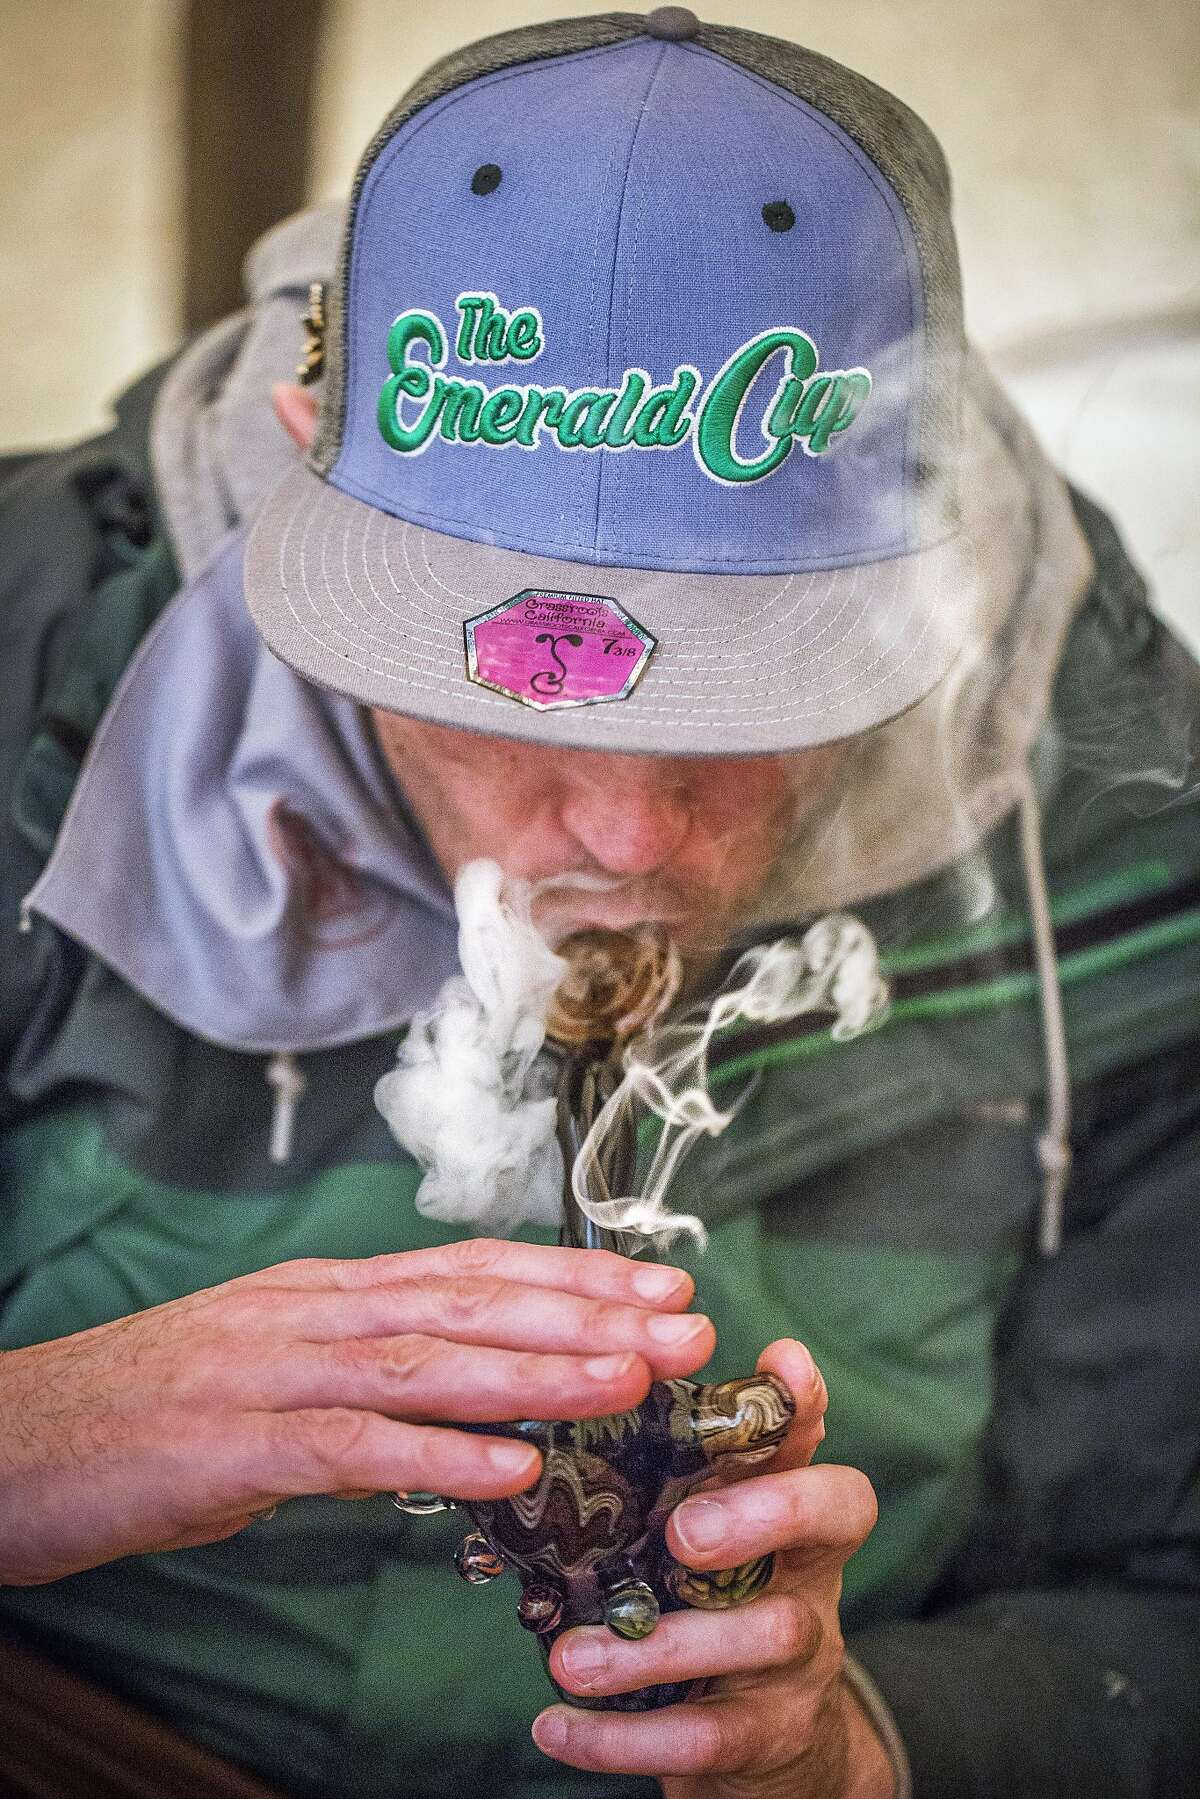 Zelly Rock takes a hit of weed inside a teepee Saturday, Dec. 10, 2016 in Santa Rosa, CA at the Emerald Cup -- a 30,000 person cannabis county fair; the world's largest. This is the first big pot party since Prop 64 has passed, ad out angle is focusing on the newcomers to the massive, sprawling event.